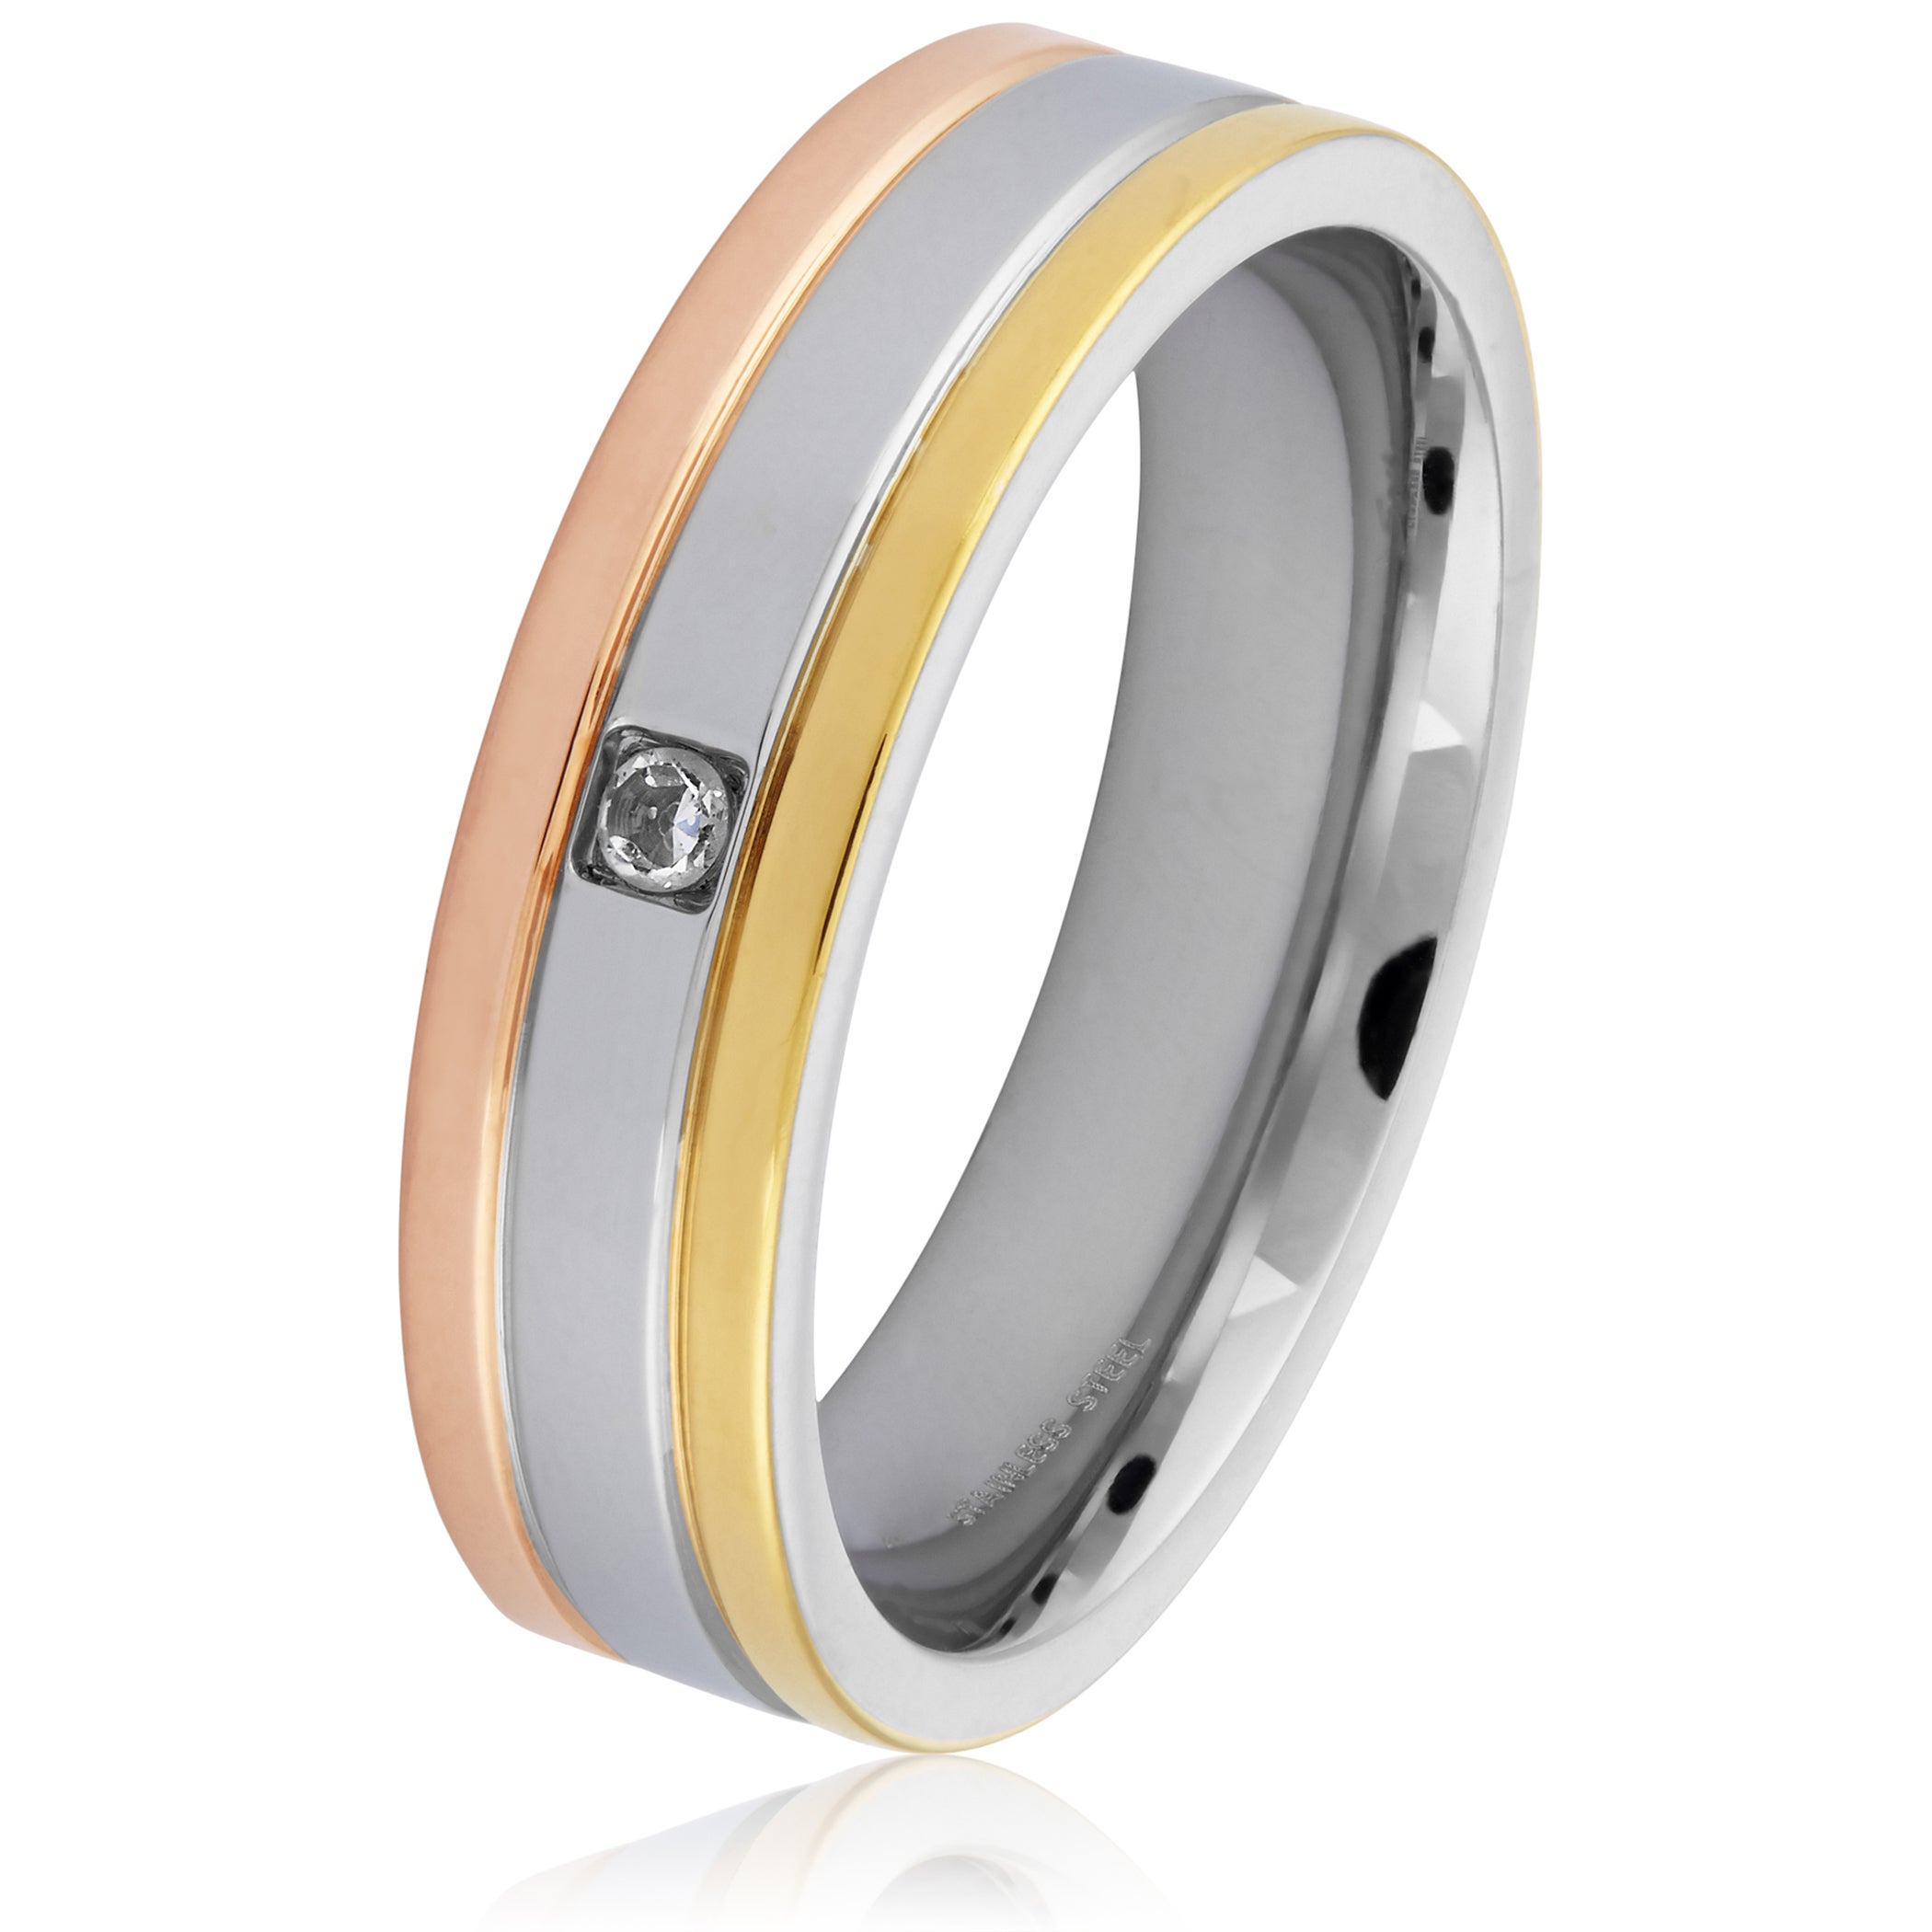 West Coast Stainless Steel Tri-Tone Grooved Cubic Zirconi...